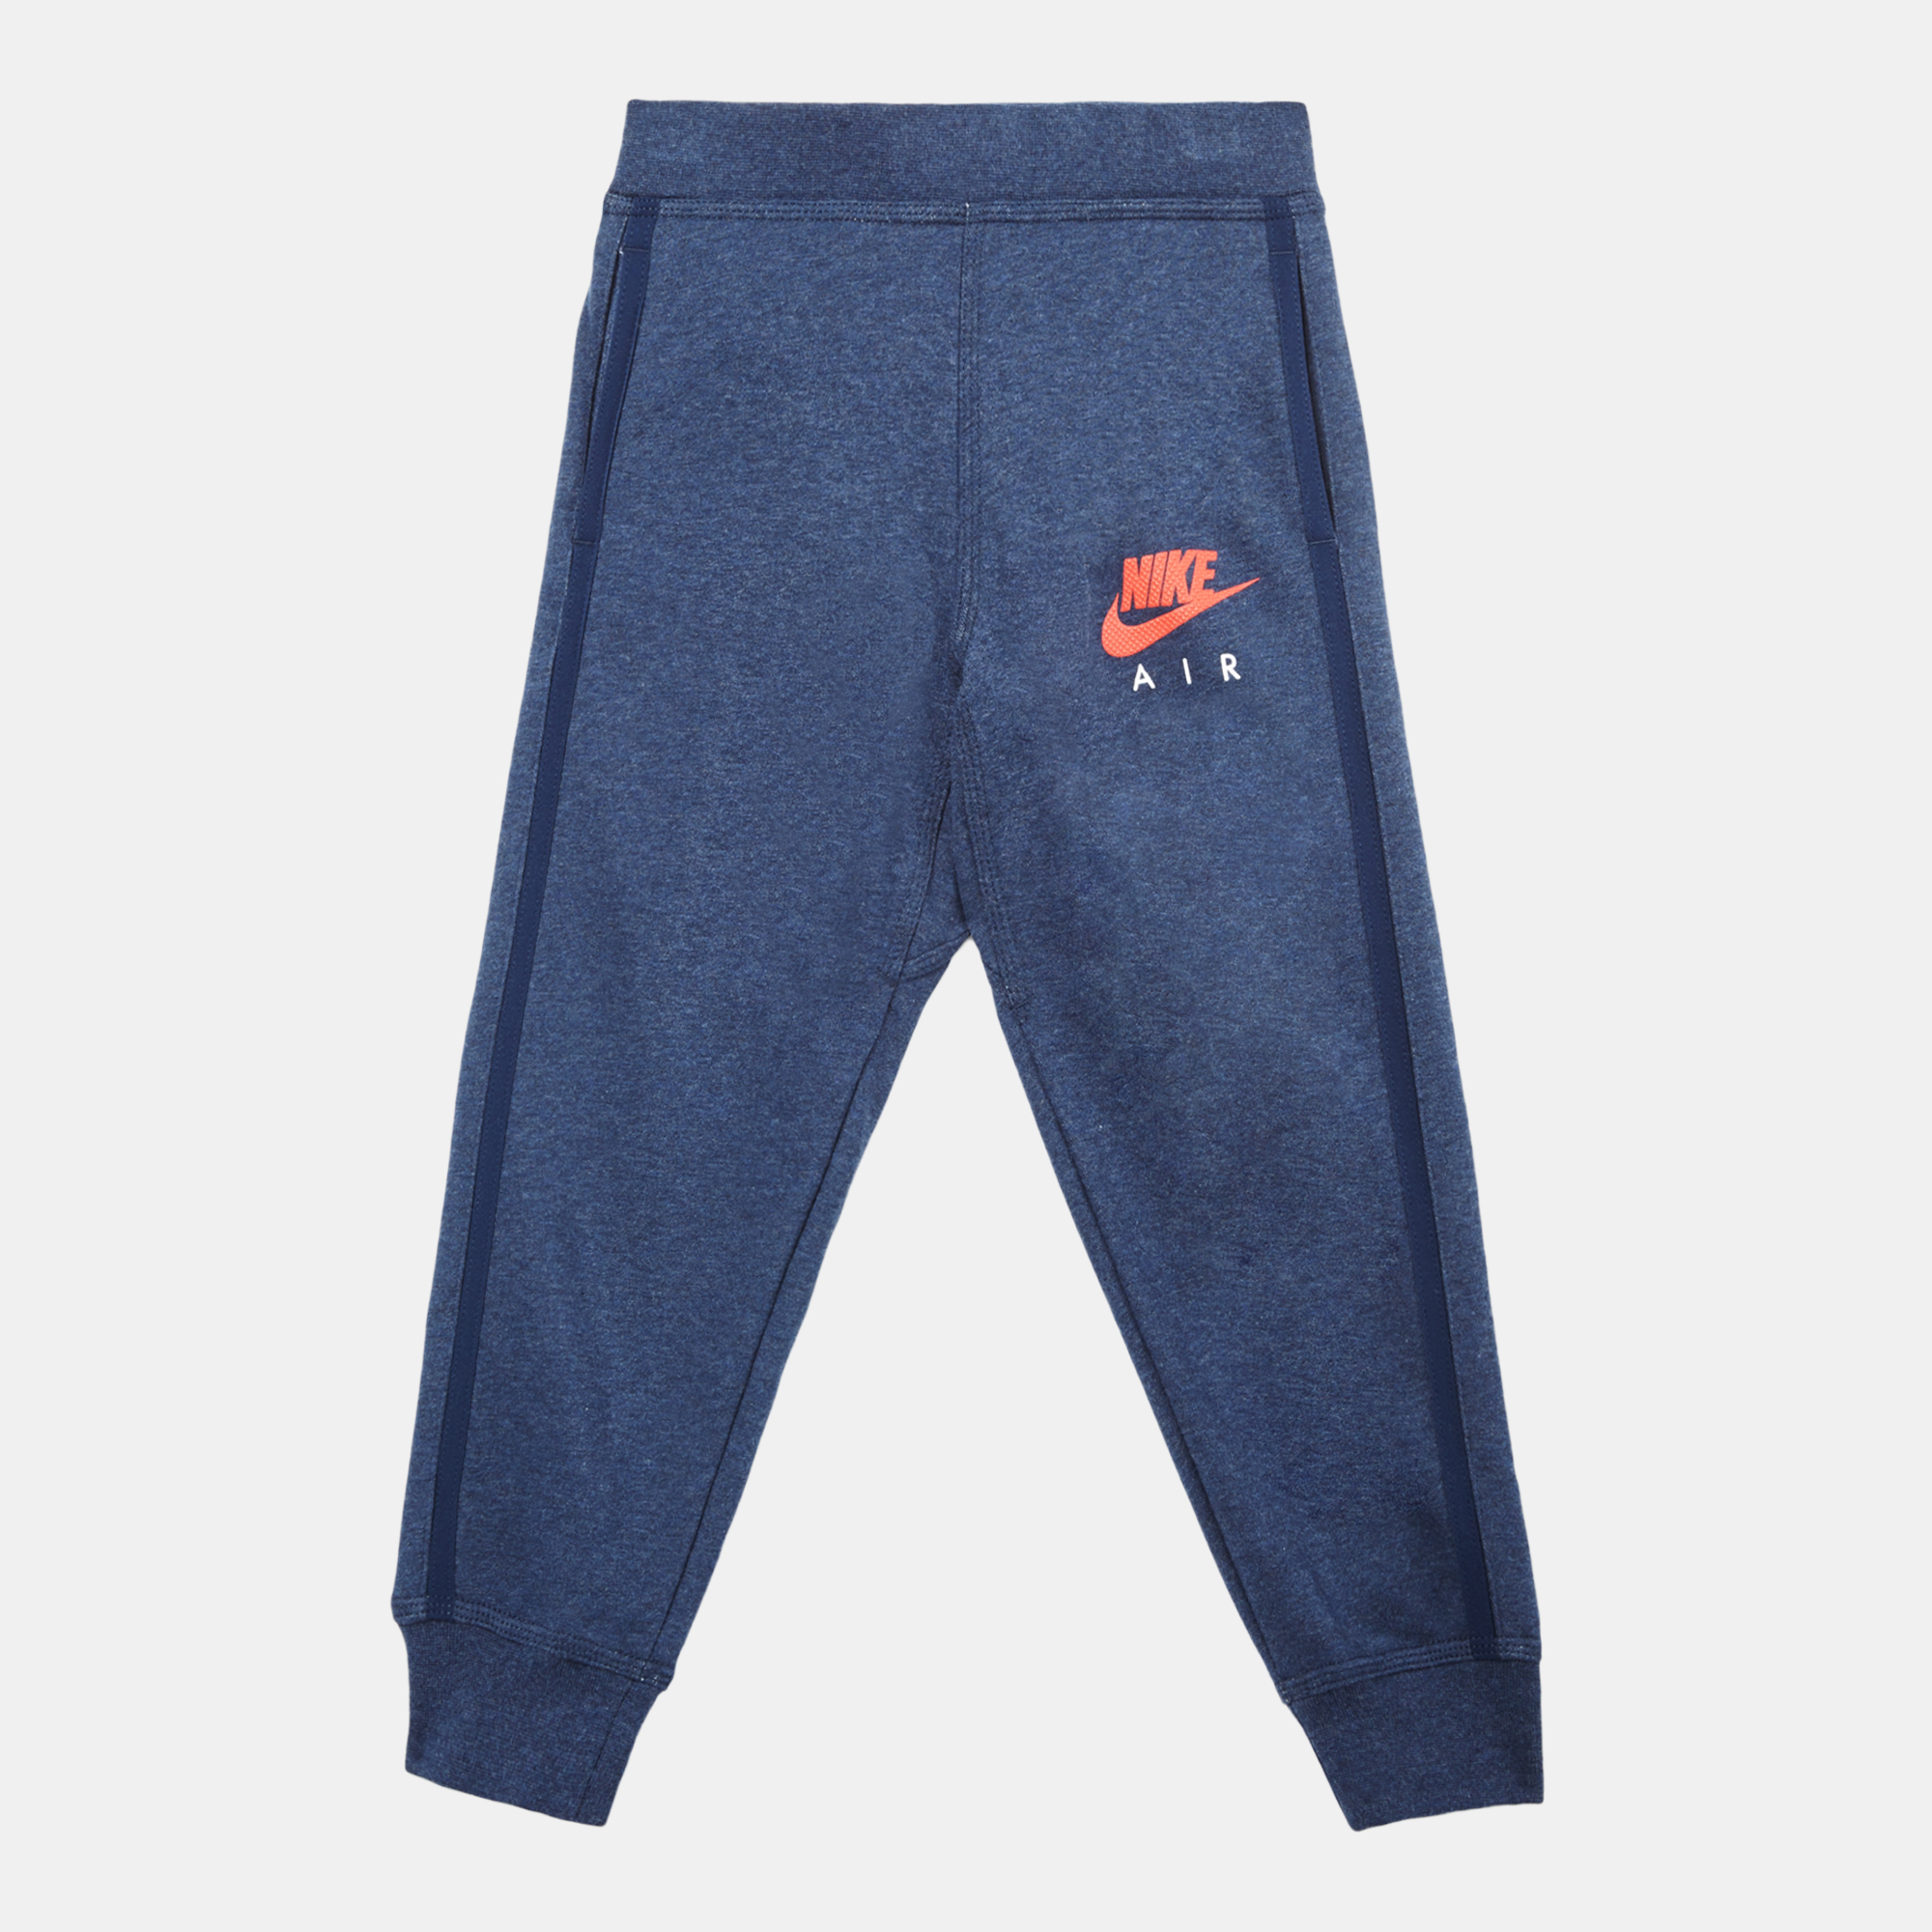 Shop Blue Nike Kids' YA Brushed Fleece HBR Rib Cuff Pant for